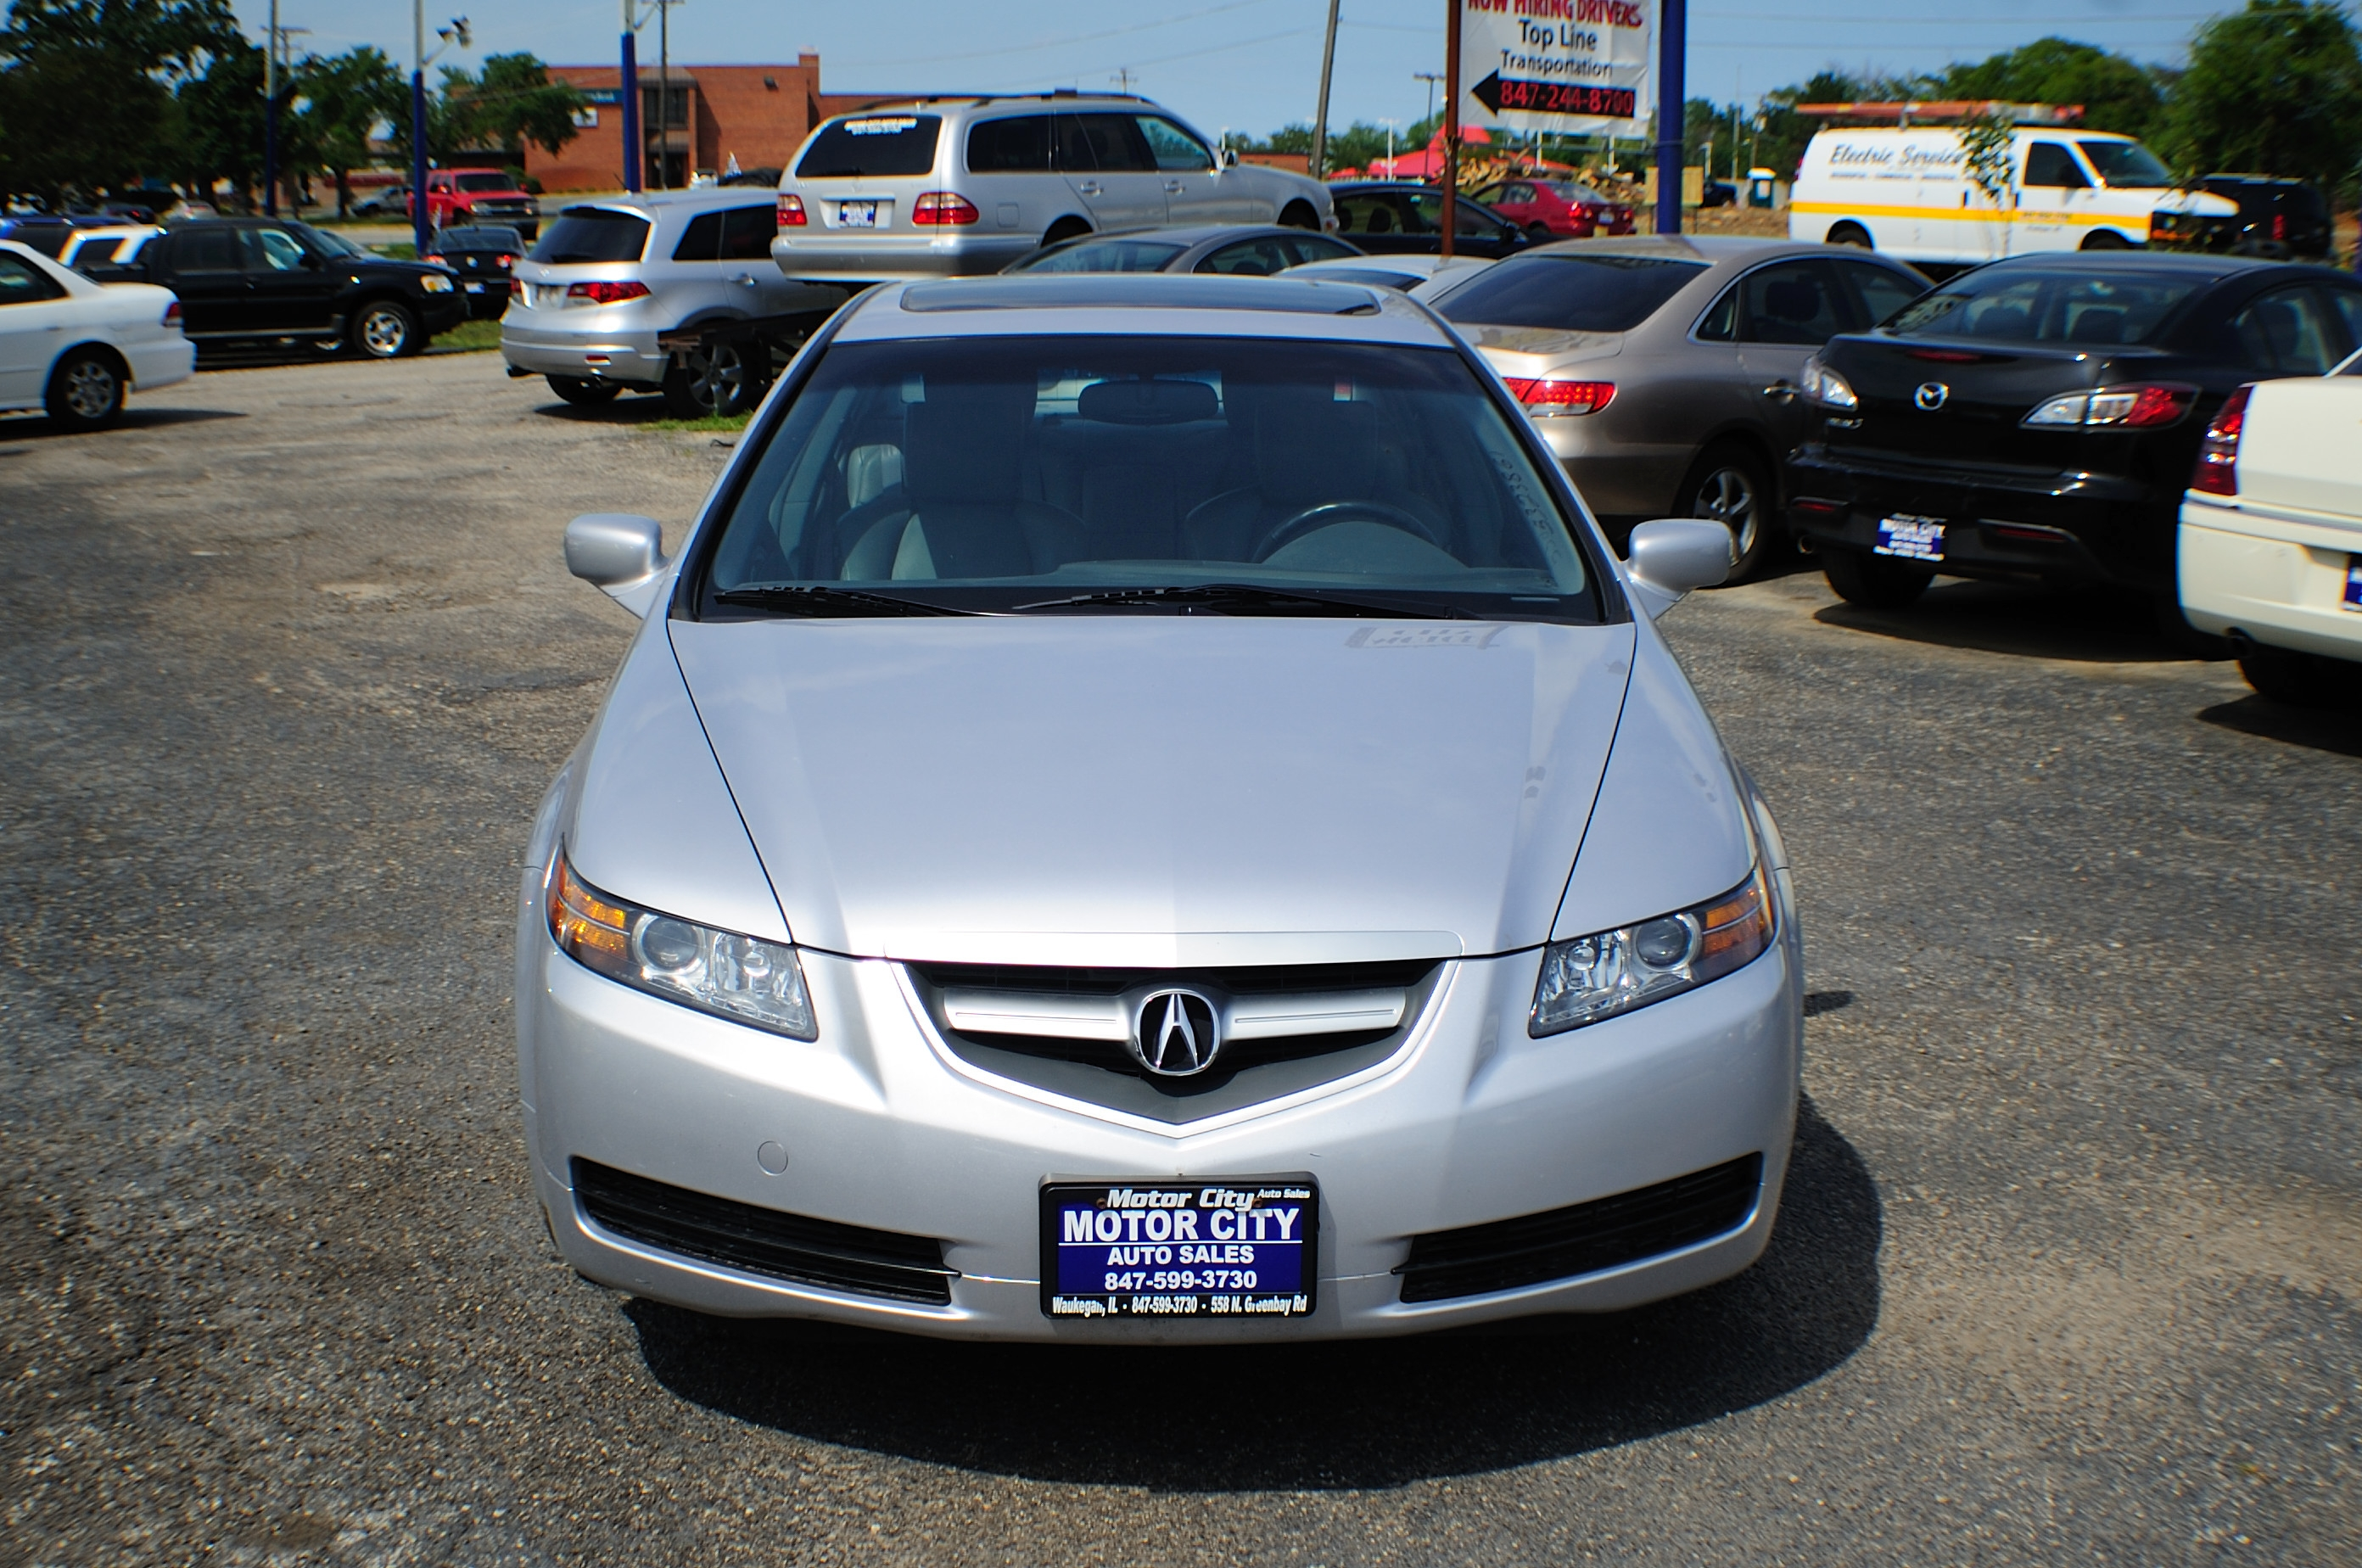 halos views s name halo electronics acura gen sale forums size by version tsx dsc jpg image aac click oracle larger for forum